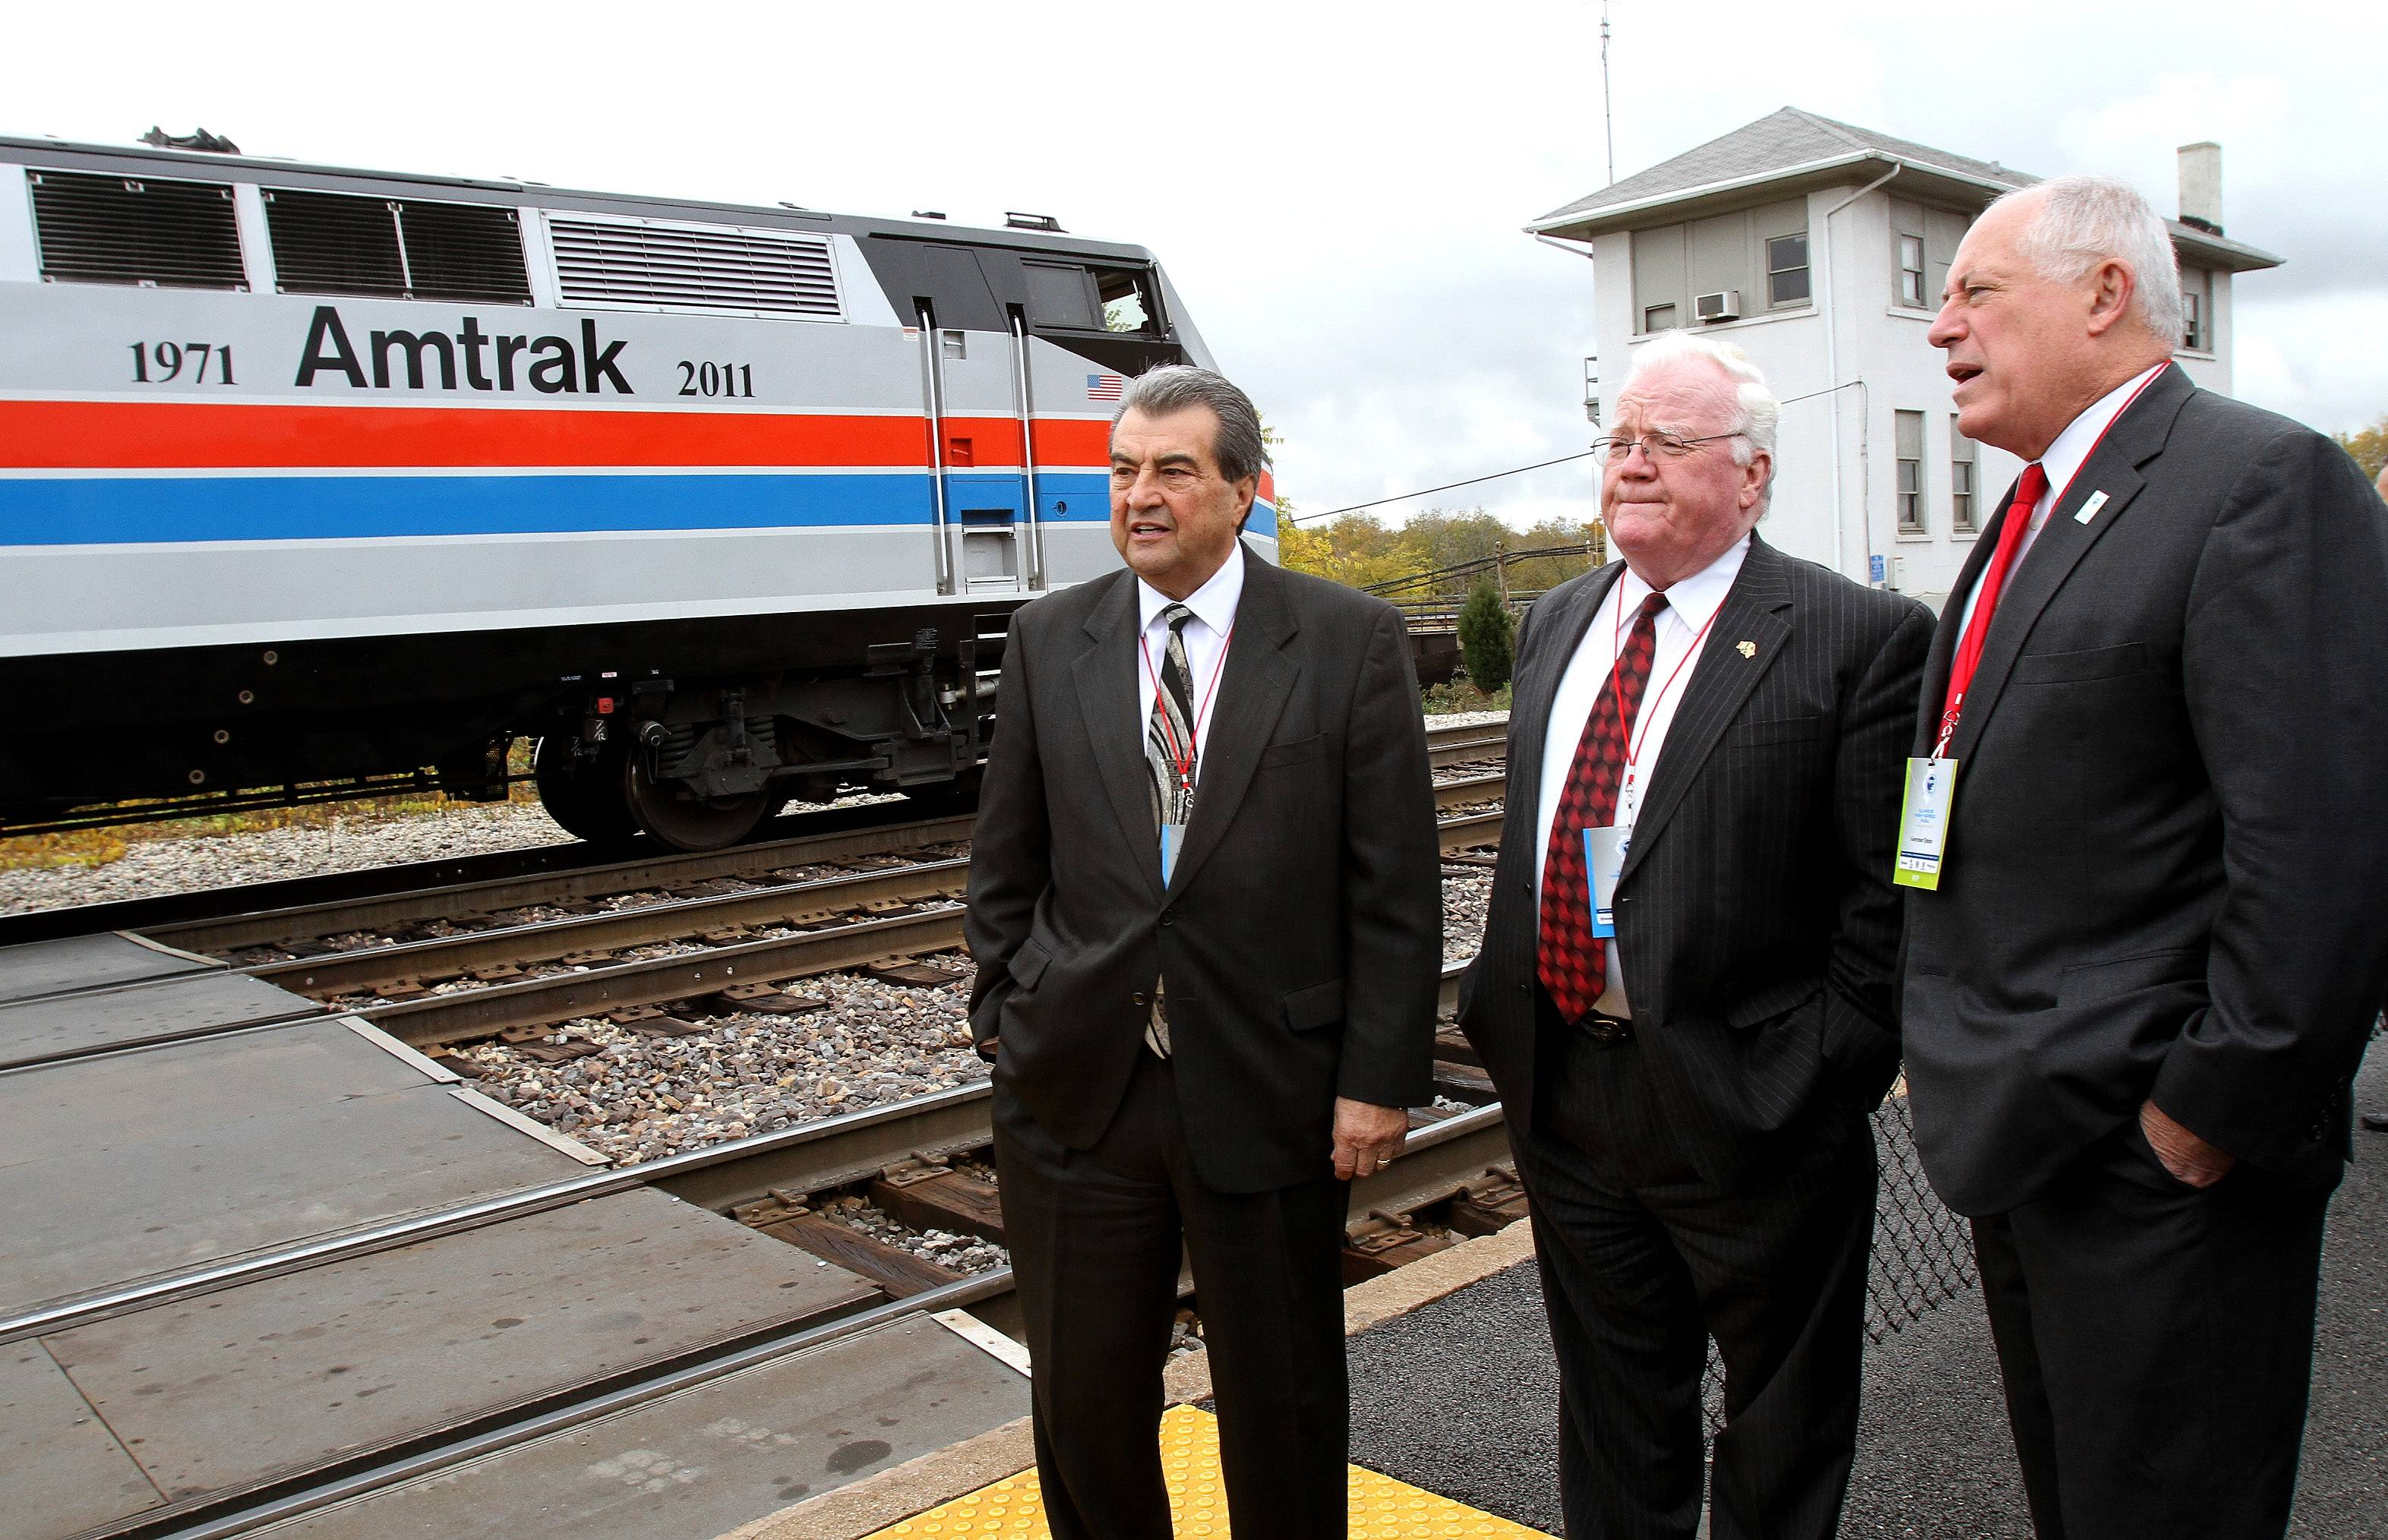 Left to right are Joliet Mayor Tom Giarrante, Larry Walsh, Will County executive and Governor Pat Quinn as they wait to board an Amtrak train.Officials took a high-speed train ride from Joliet to Normal on Friday. A planned high-speed rail route between Chicago and St. Louis will be the first in the midwest.